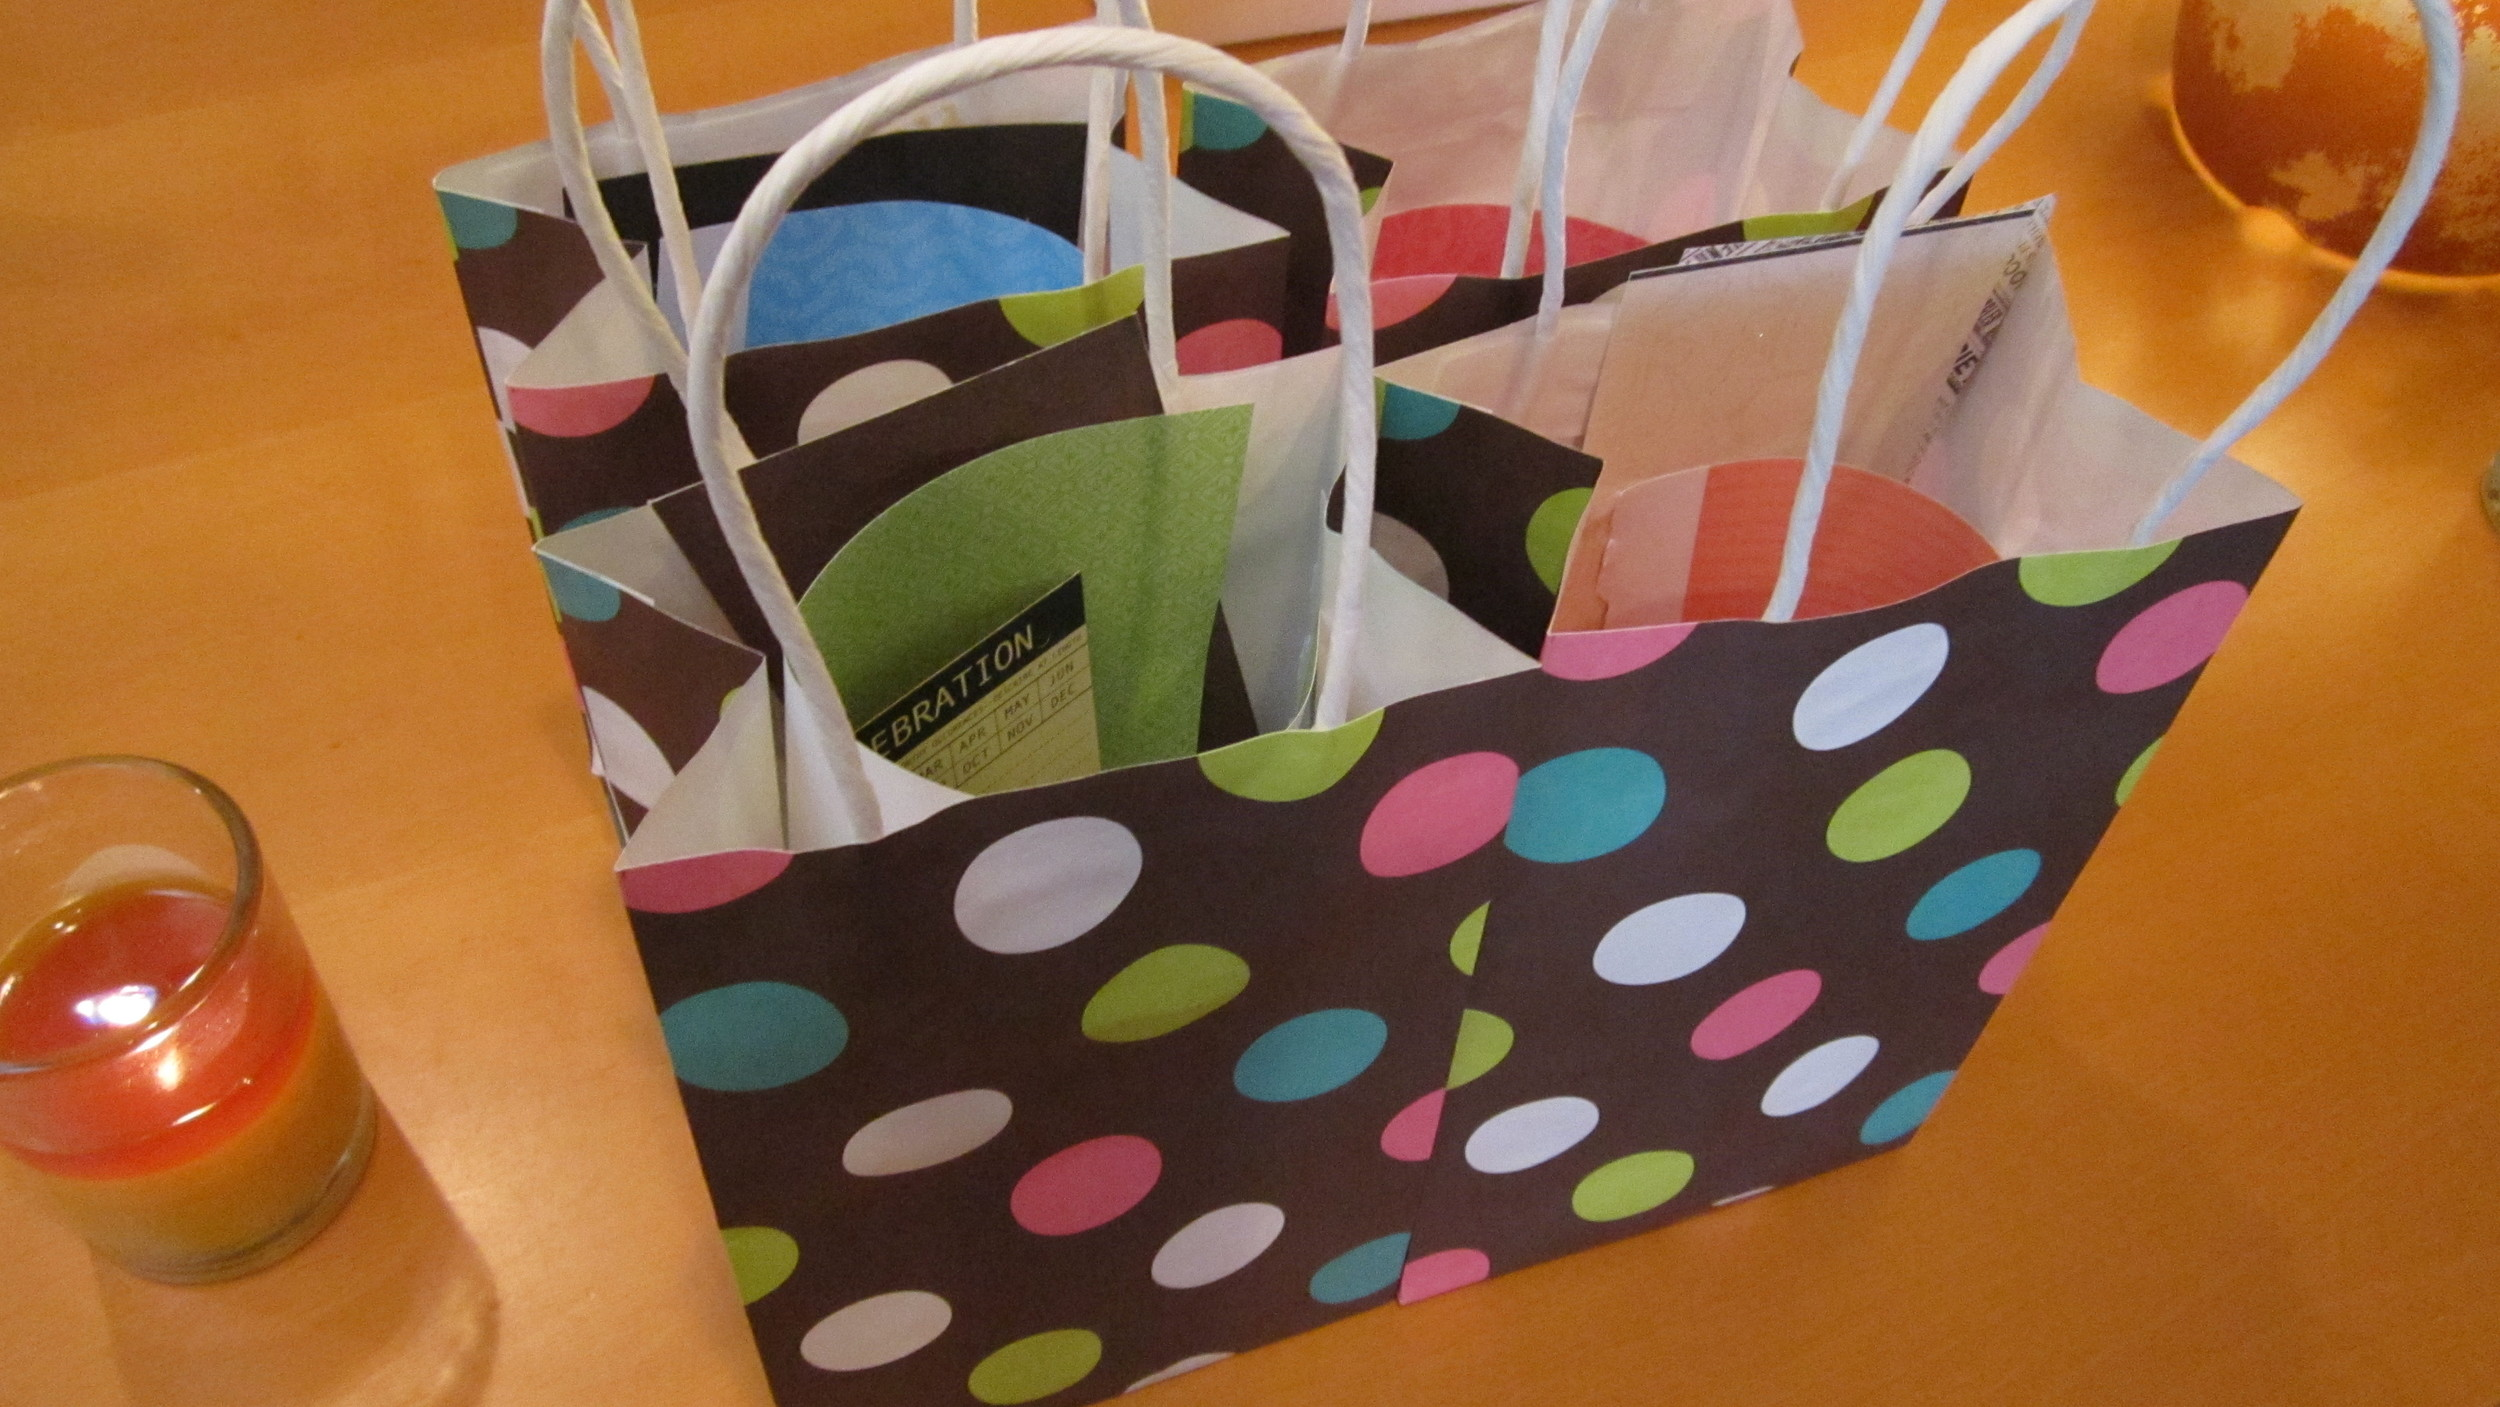 Special goodie bags for each guest.